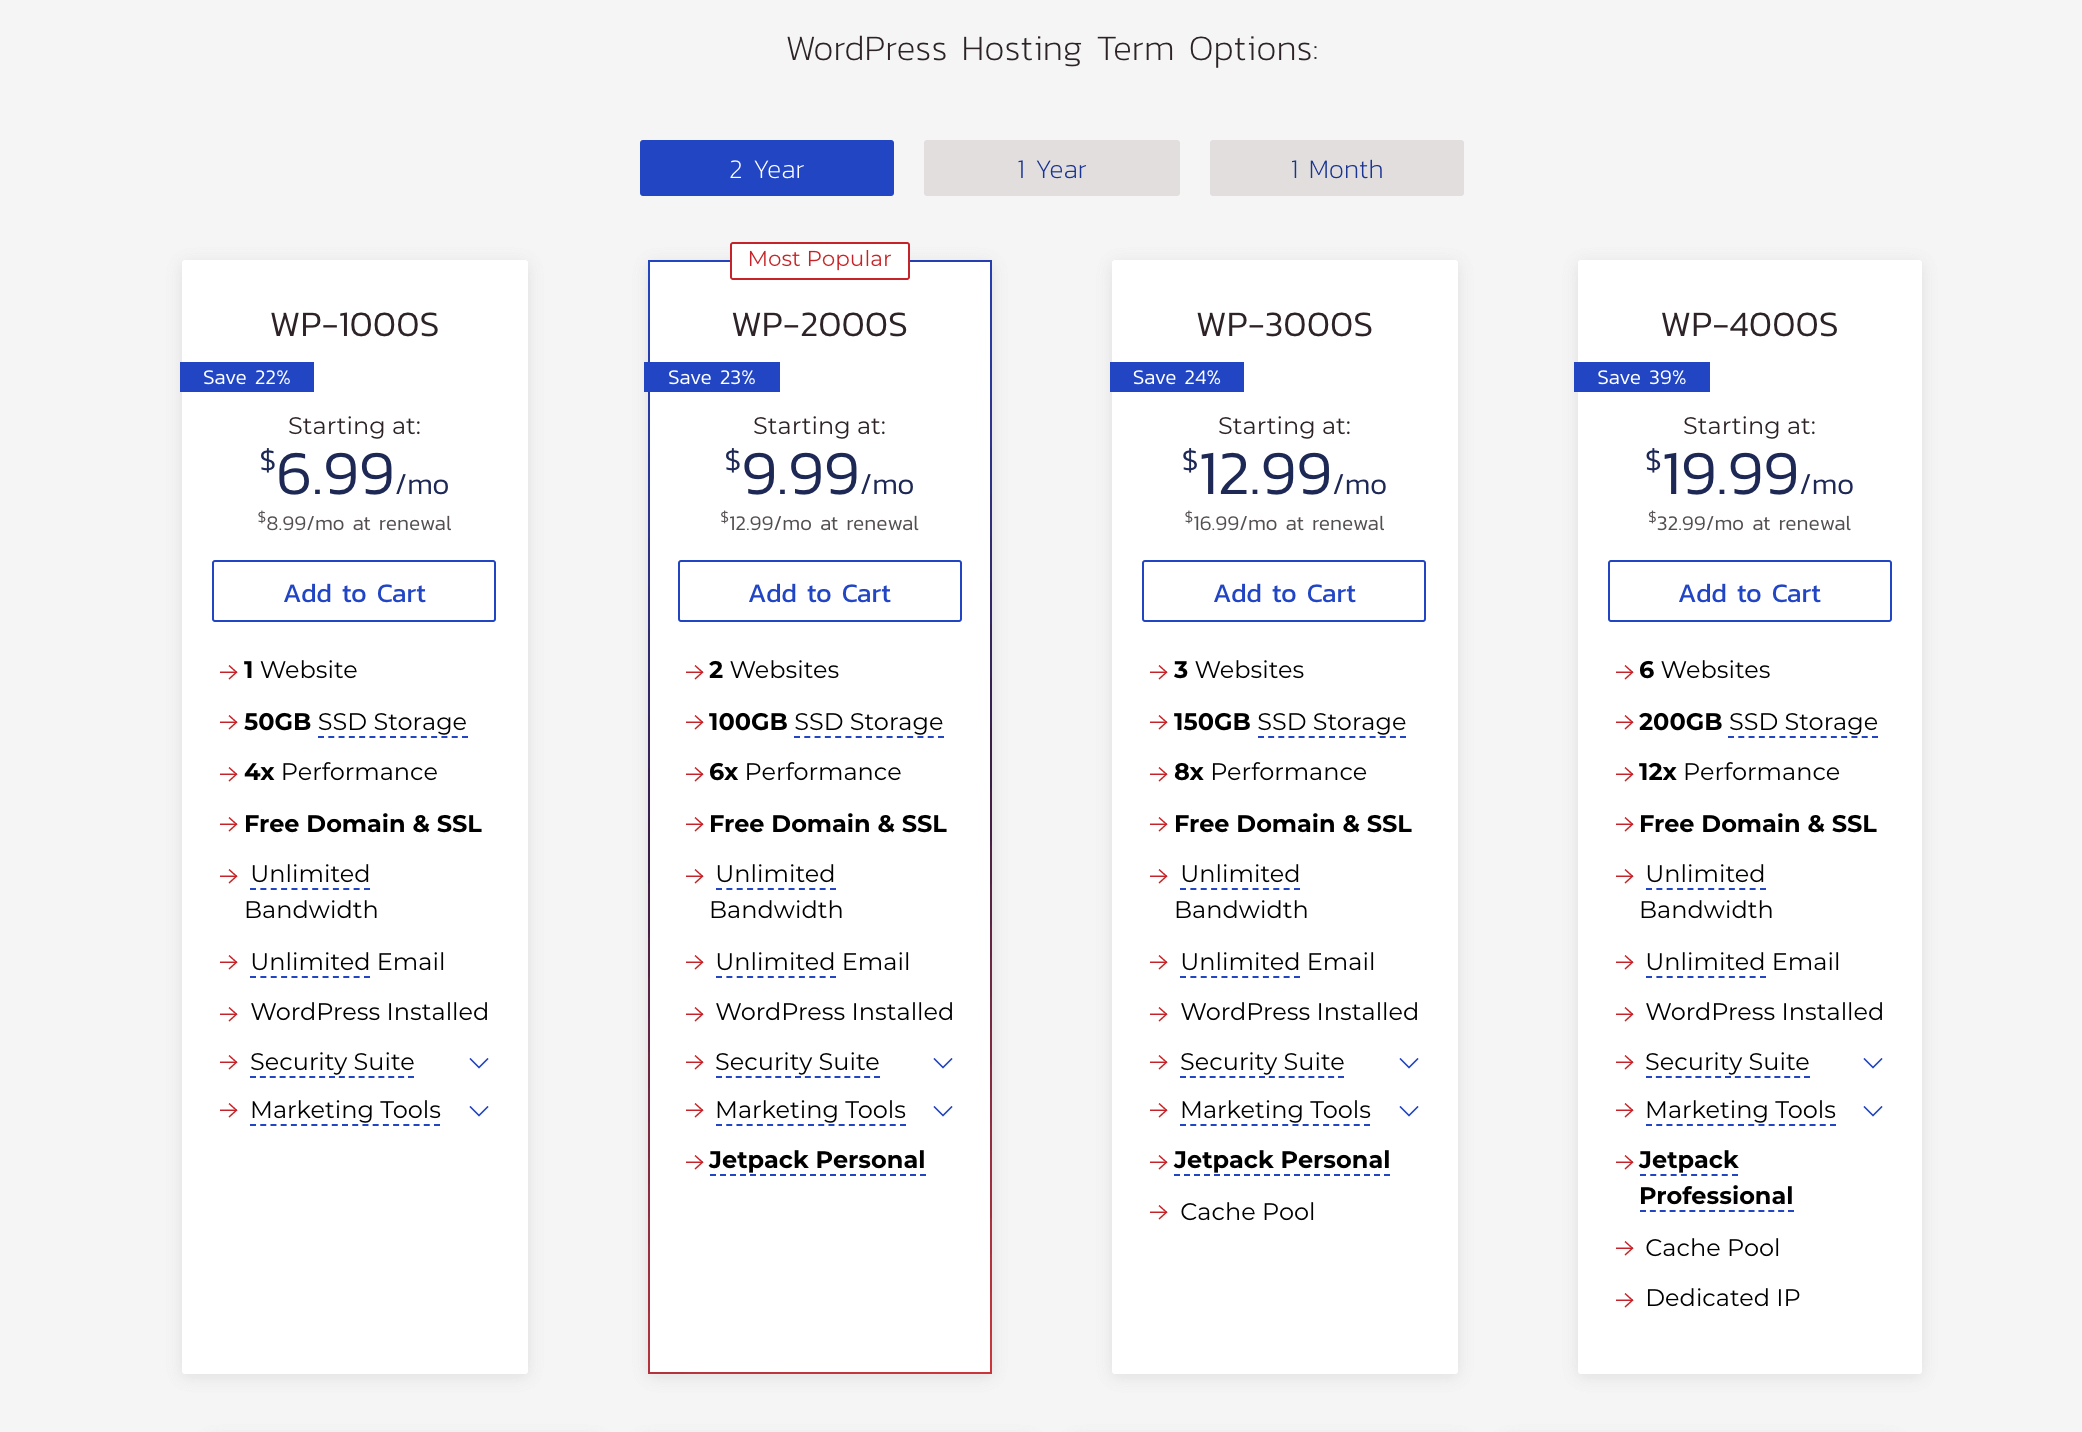 InMotion Hosting pricing for WordPress hosting.